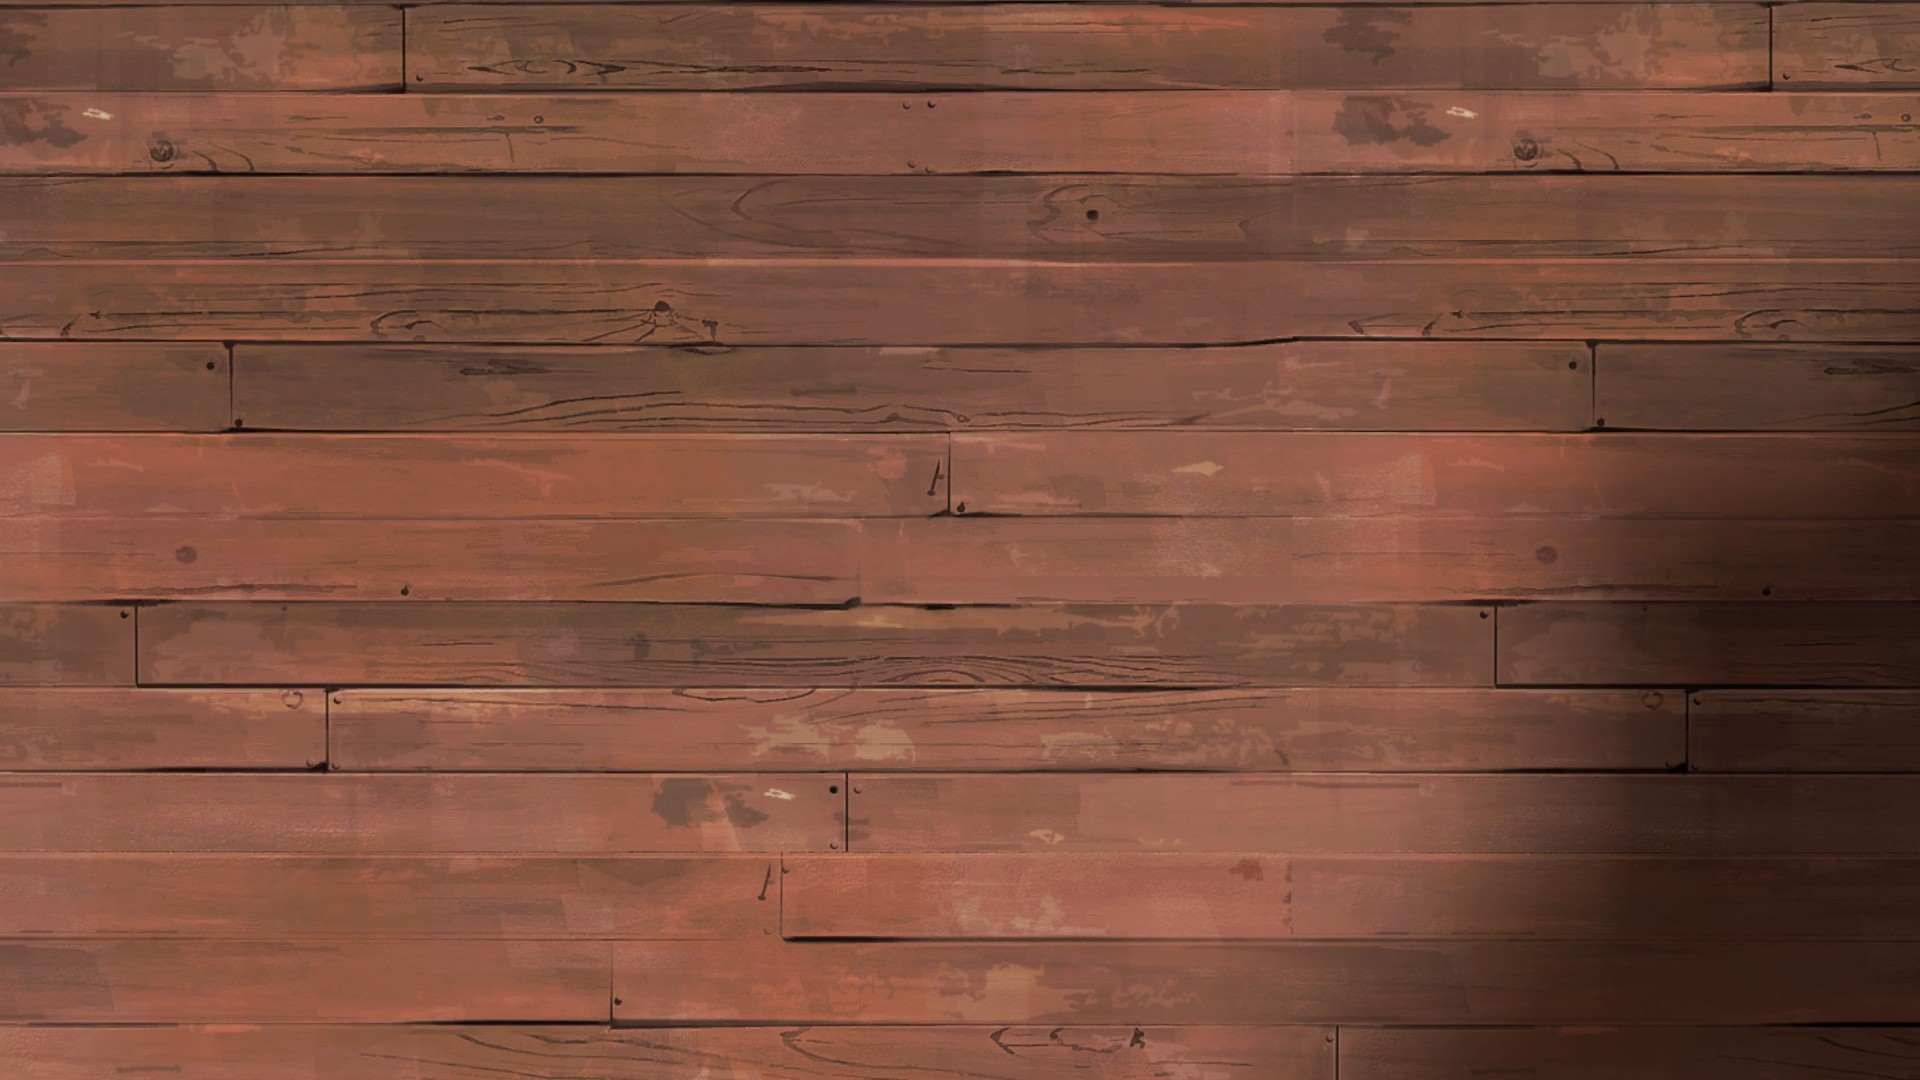 Wood Wall Wallpaper 1920x1080 Wood Wall Textures Team Fortress 2 1920x1080